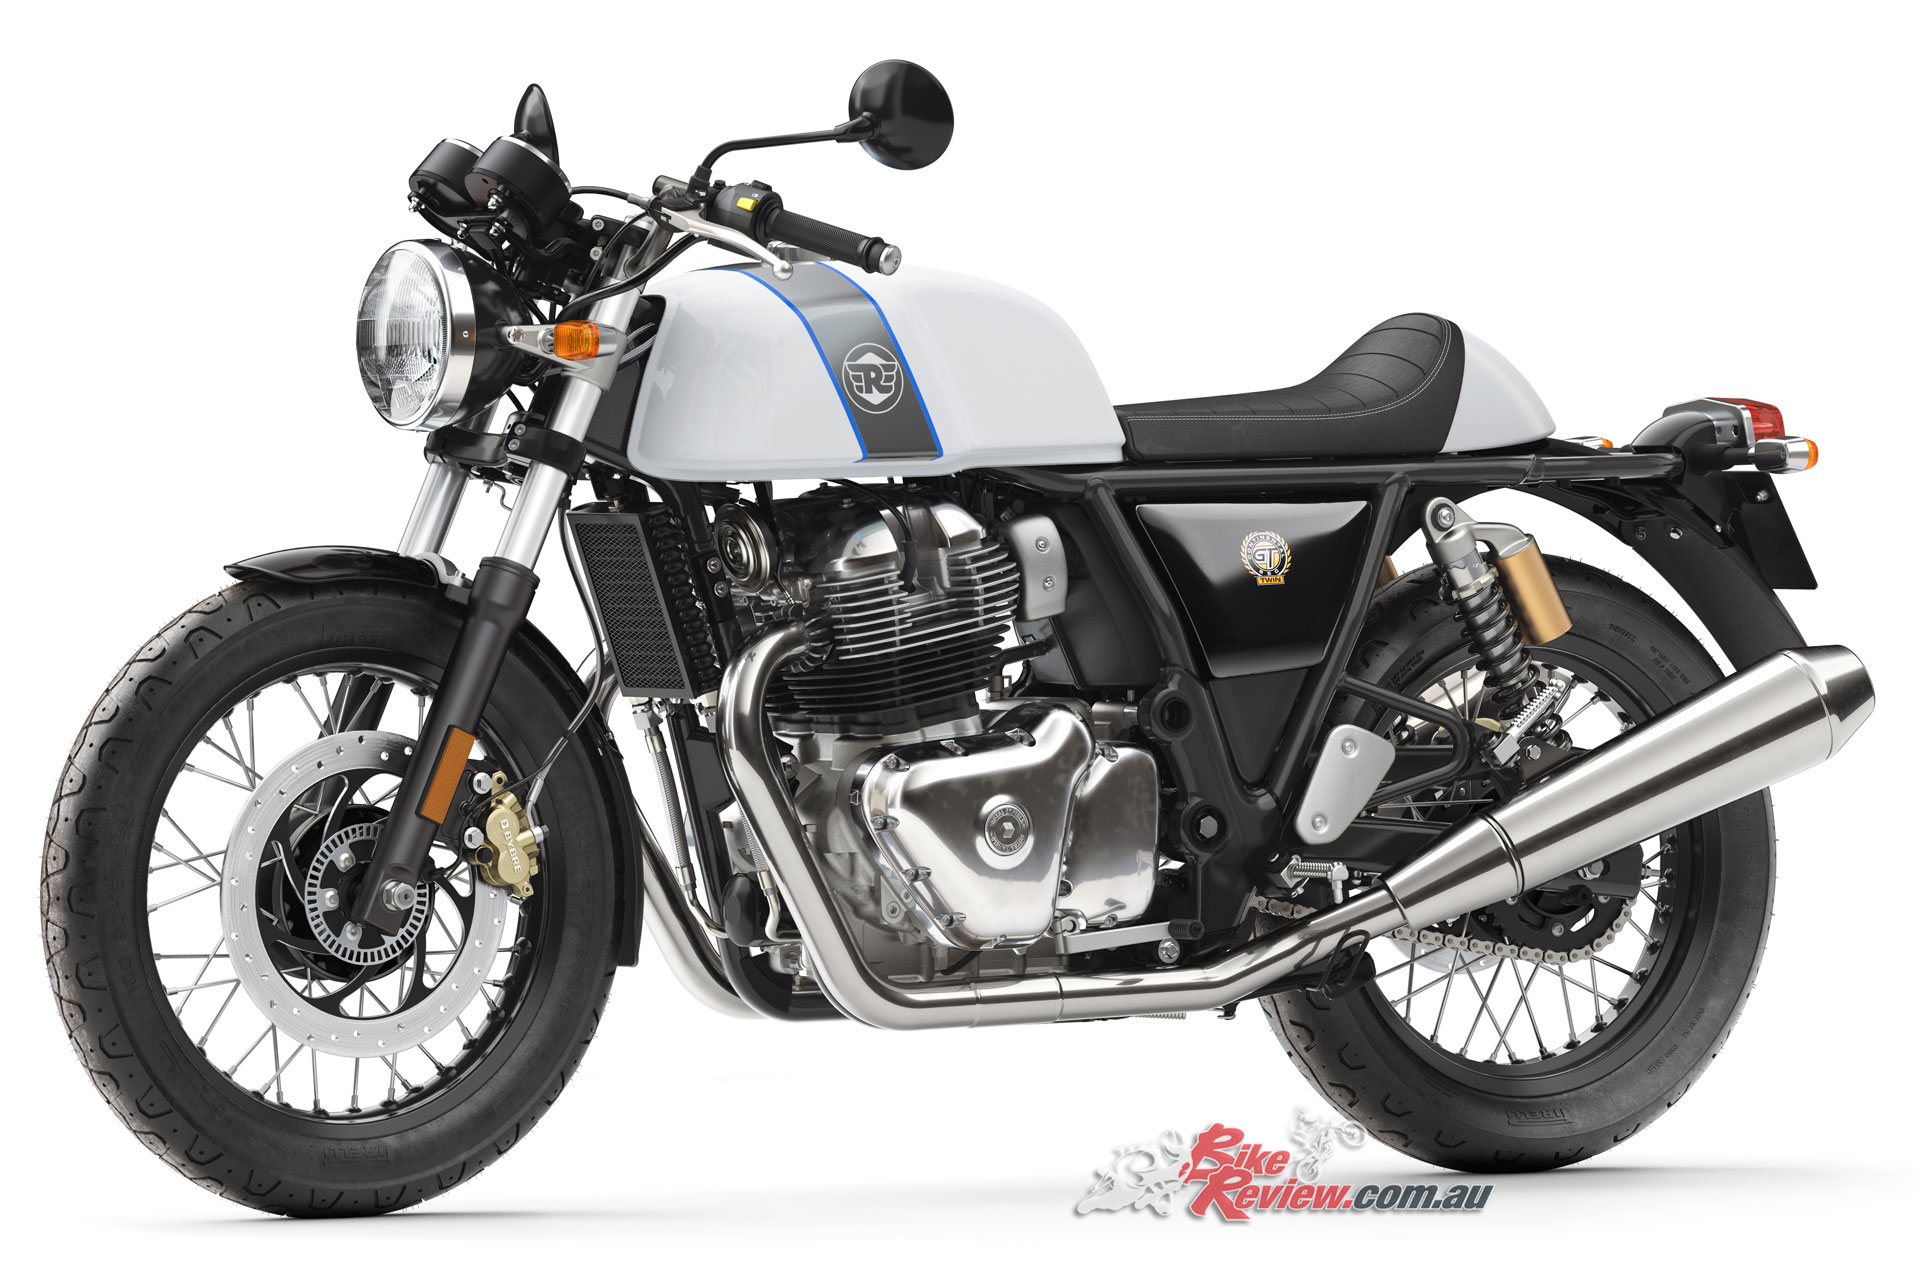 2018 Royal Enfield Continental GT 650